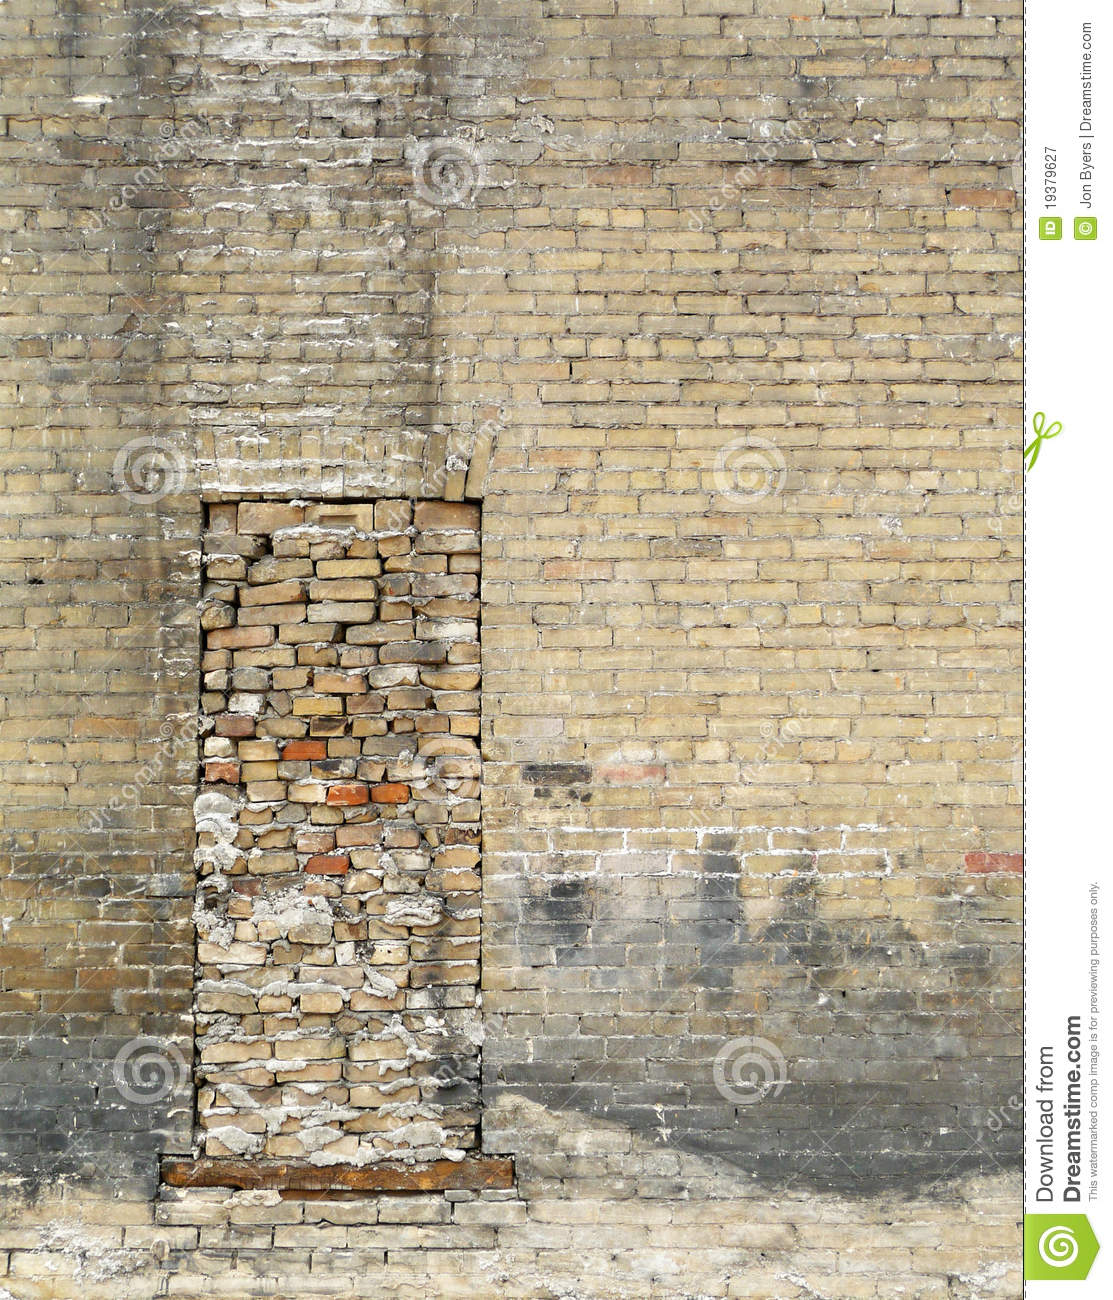 Bricked Up Window With Grunge Brick Wall Royalty Free Stock Photography  Image 19379627